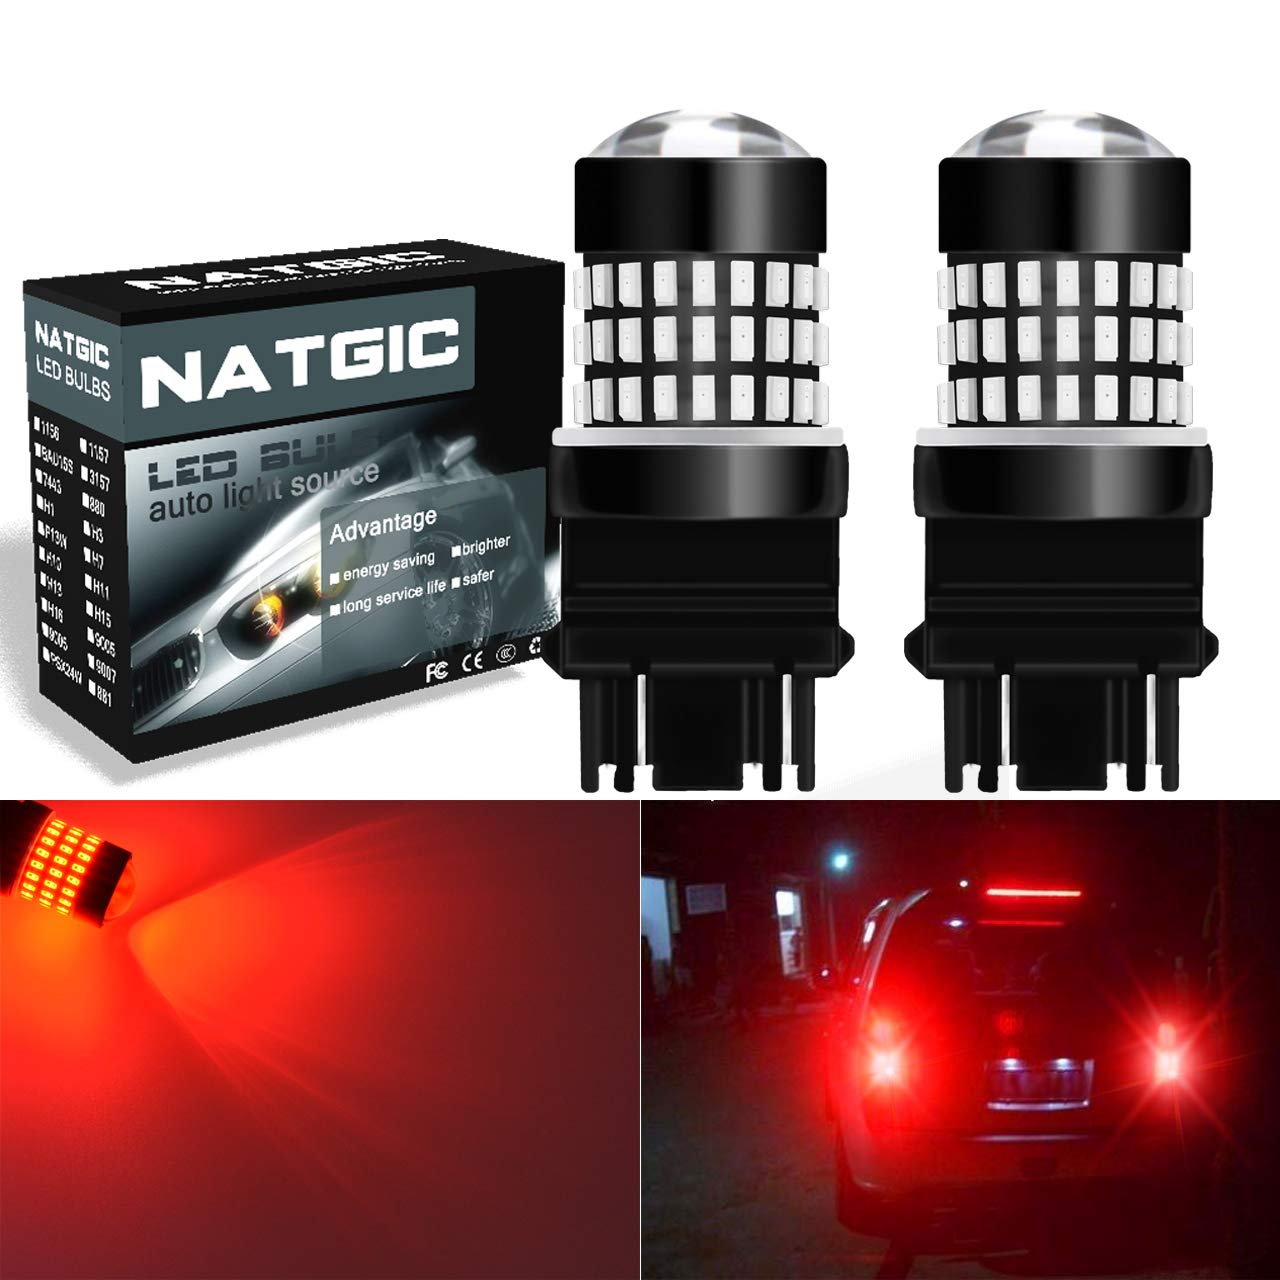 Replacement for RV Camper Trailer Automotive Light Bulbs Marine Boat Lights BrothersLED 1156 1141 BA15S Single Contact Bayonet LED Light Bulbs Works on 12V/&24V Cool White 6-Pack